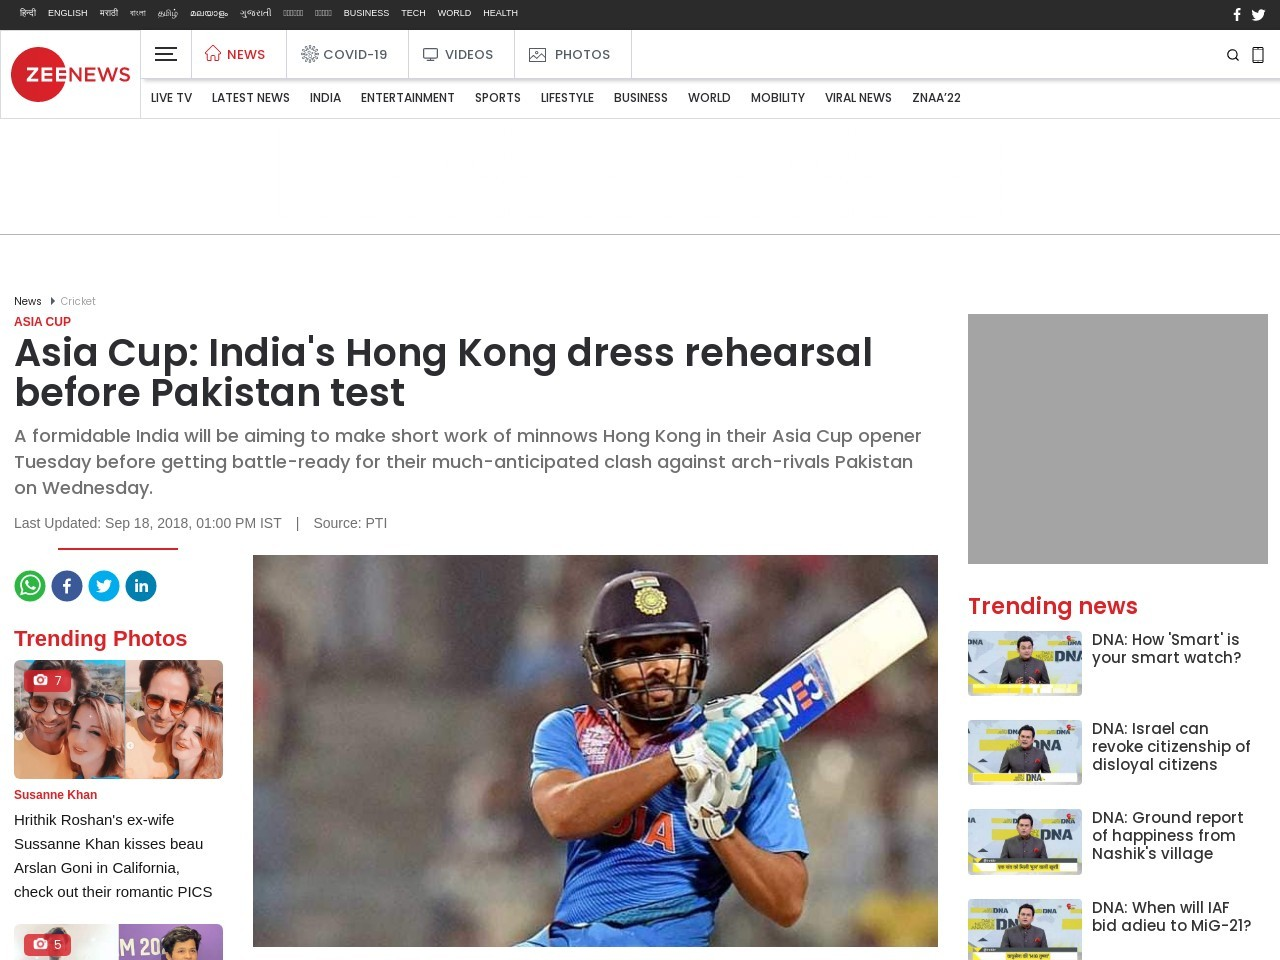 Asia Cup: India's Hong Kong dress rehearsal before Pakistan test